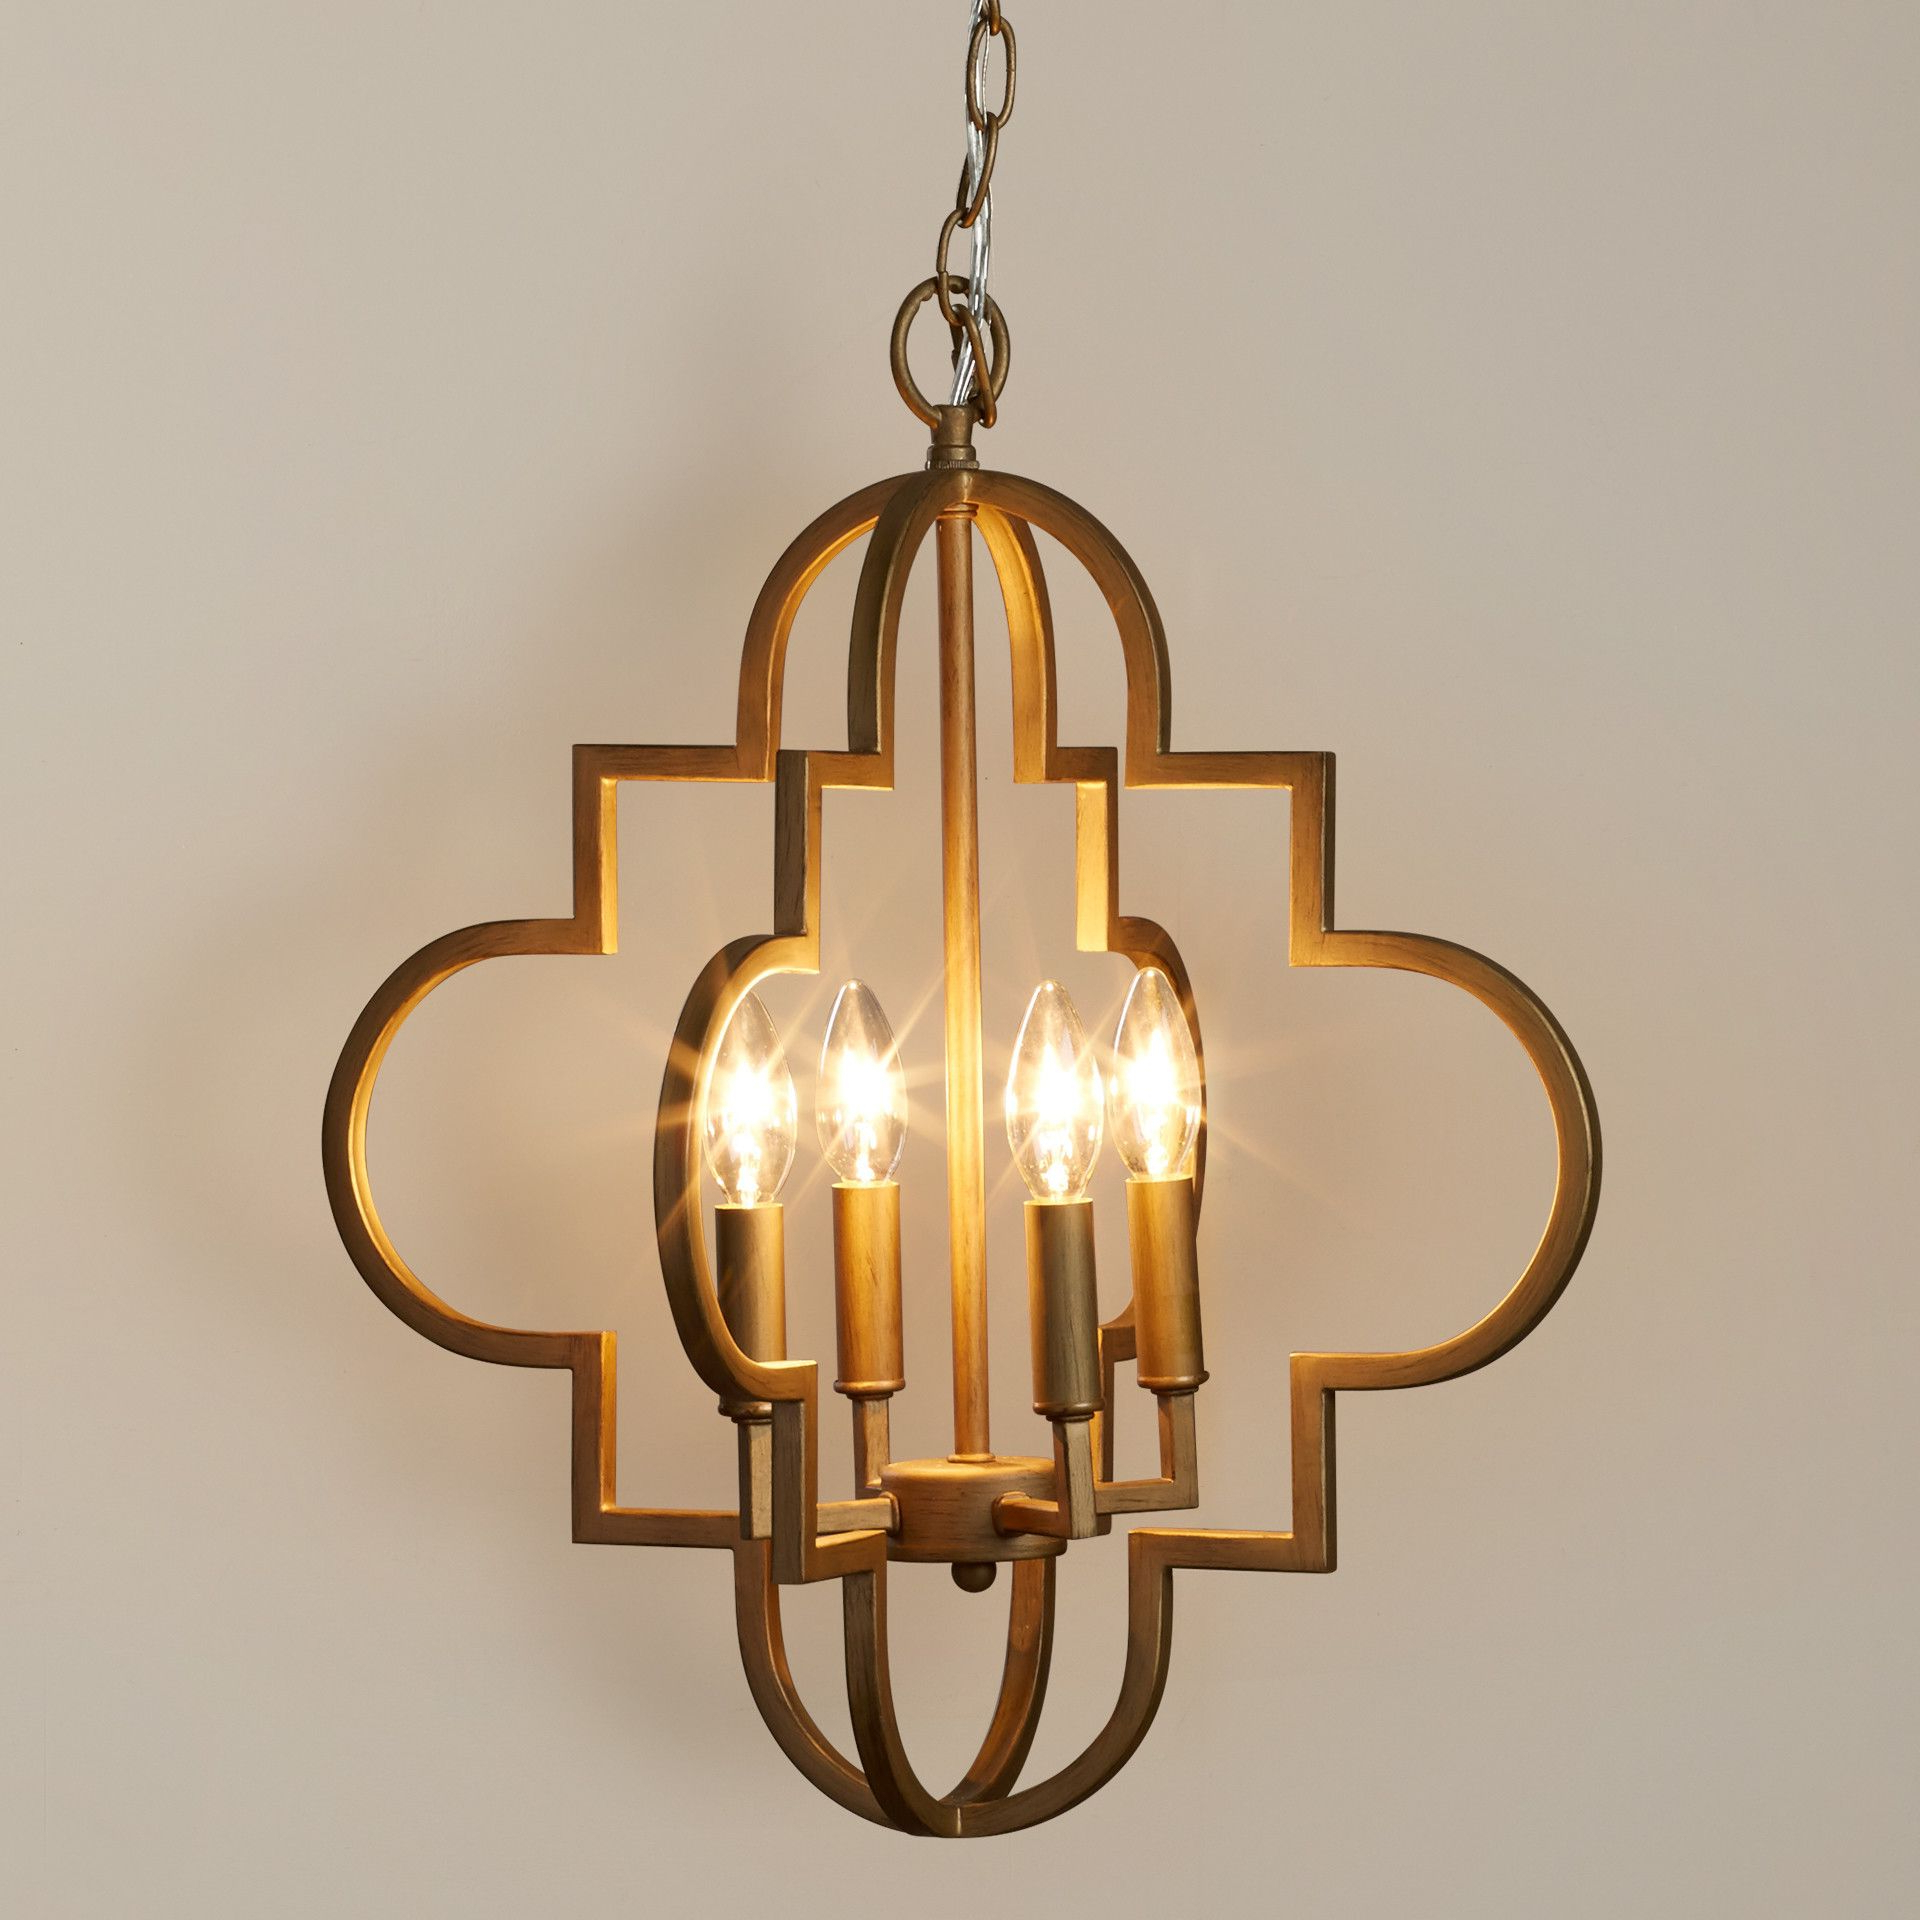 Popular House Of Hampton Aldridge 4 Light Pendant & Reviews Within Kaycee 4 Light Geometric Chandeliers (Gallery 16 of 20)